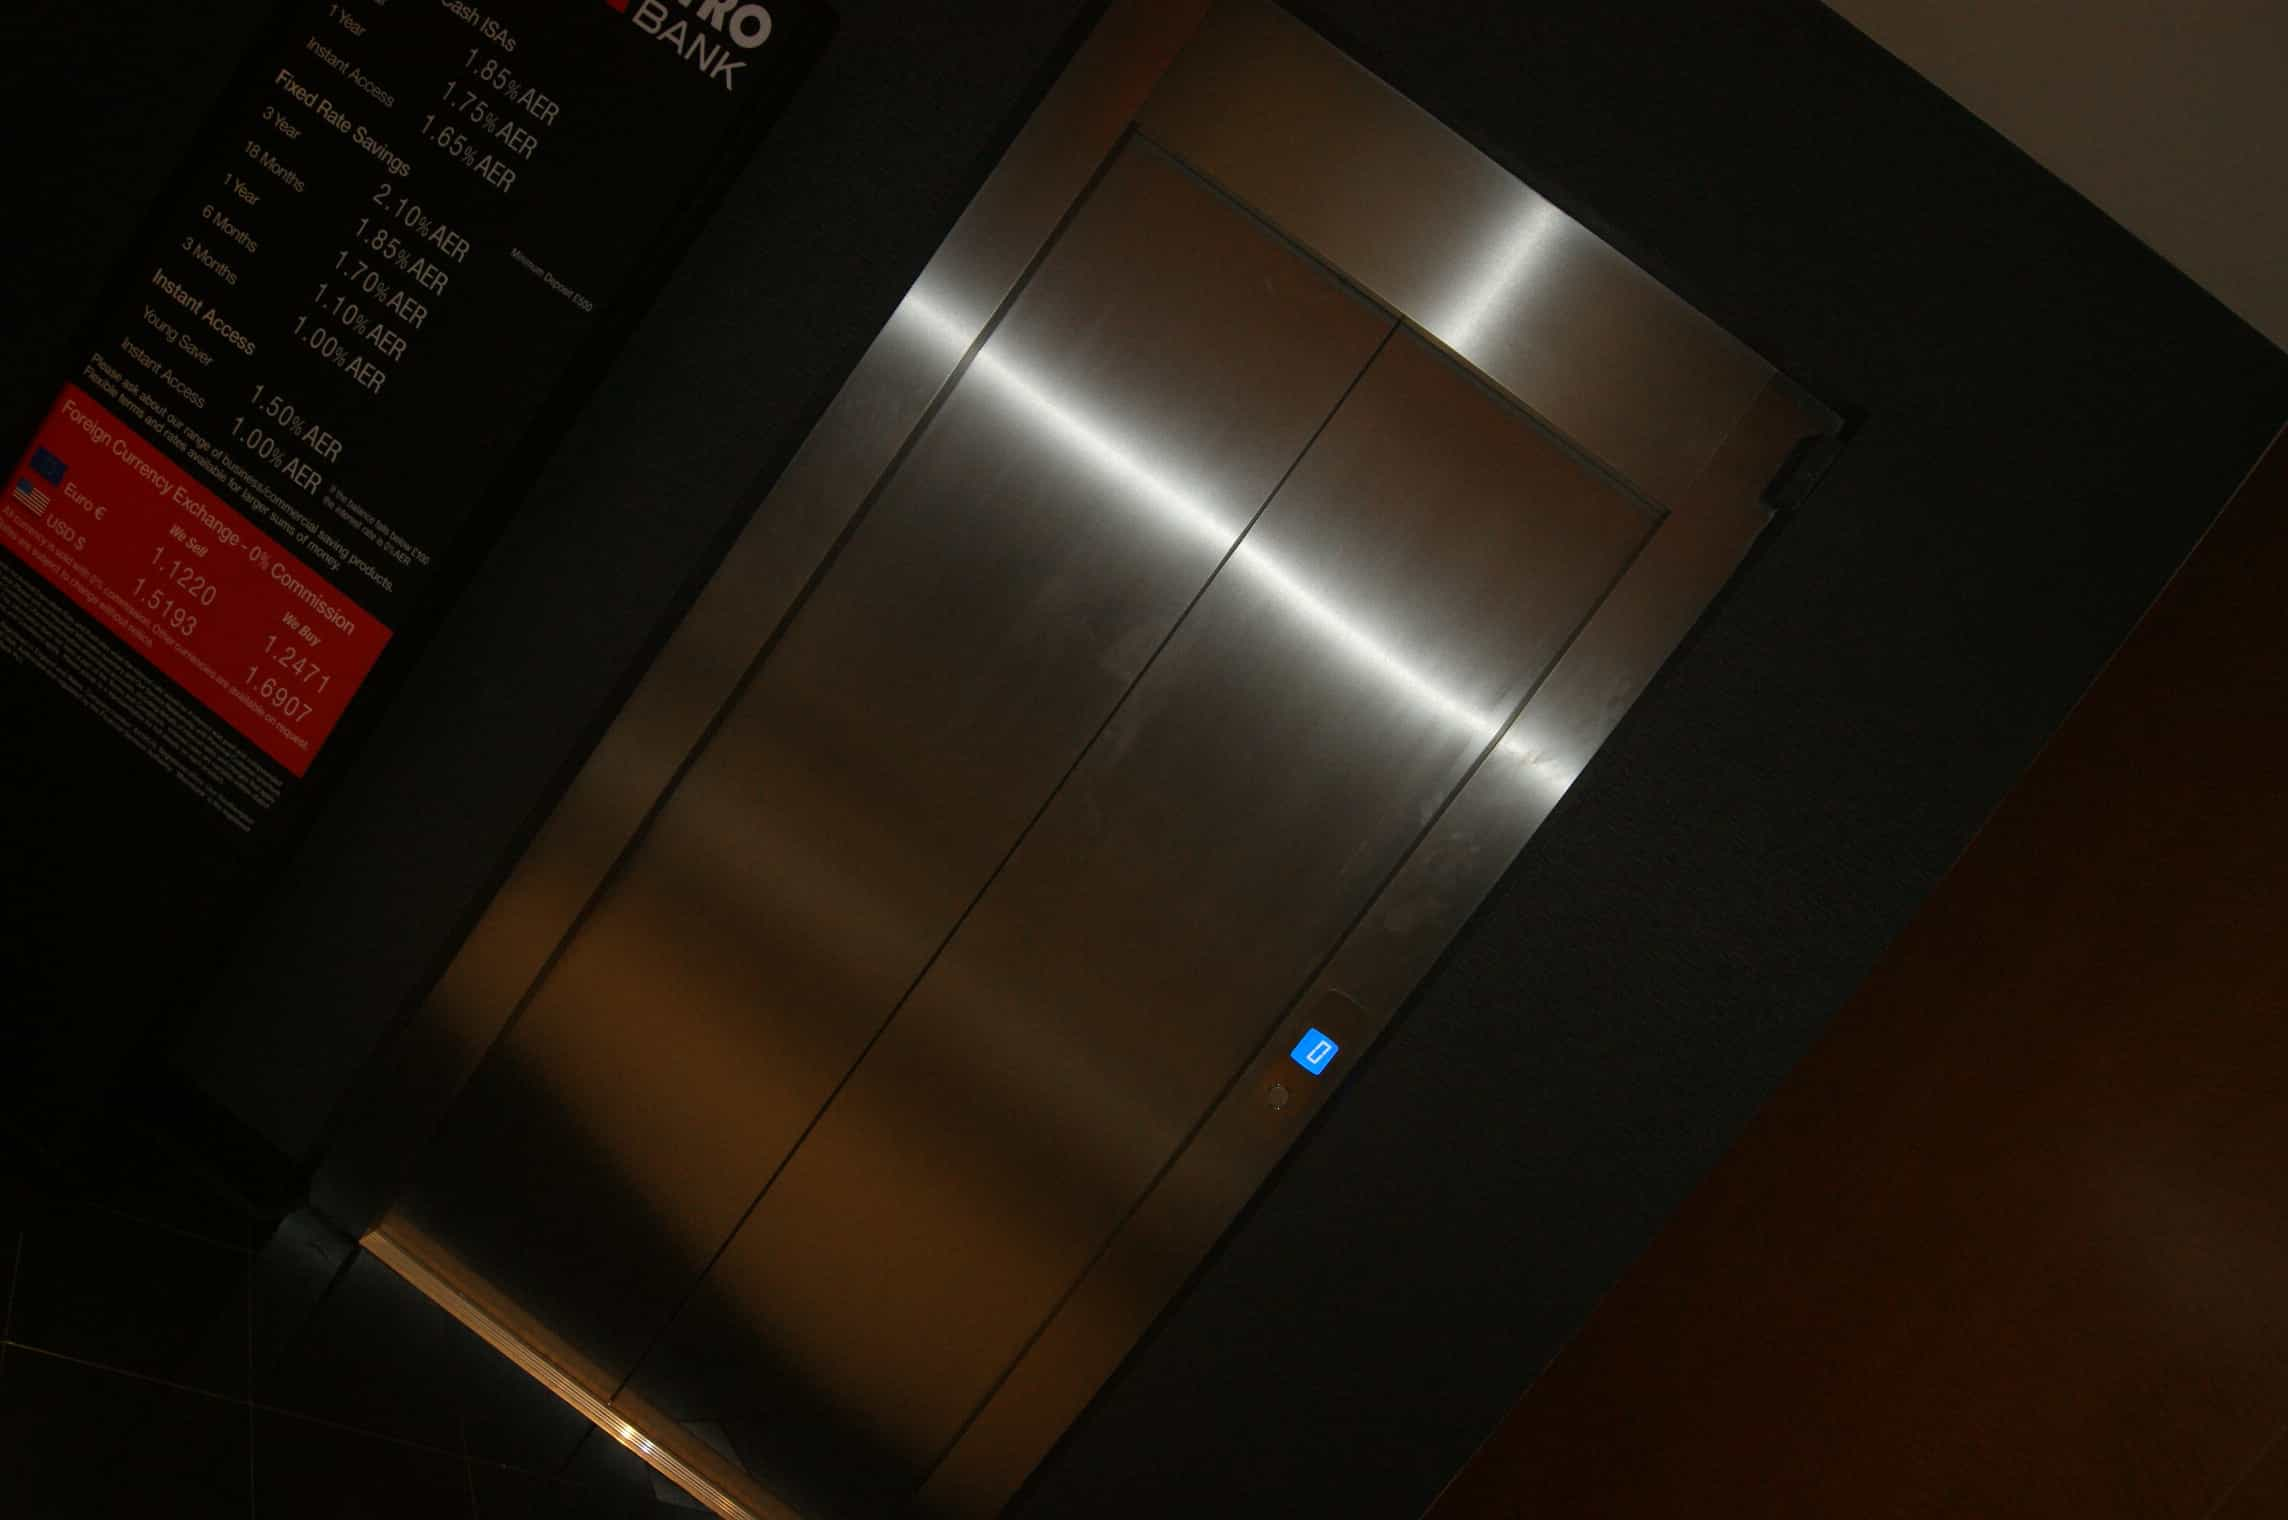 dc193a0cb26 The Home Lift Buying Guide - Axess2